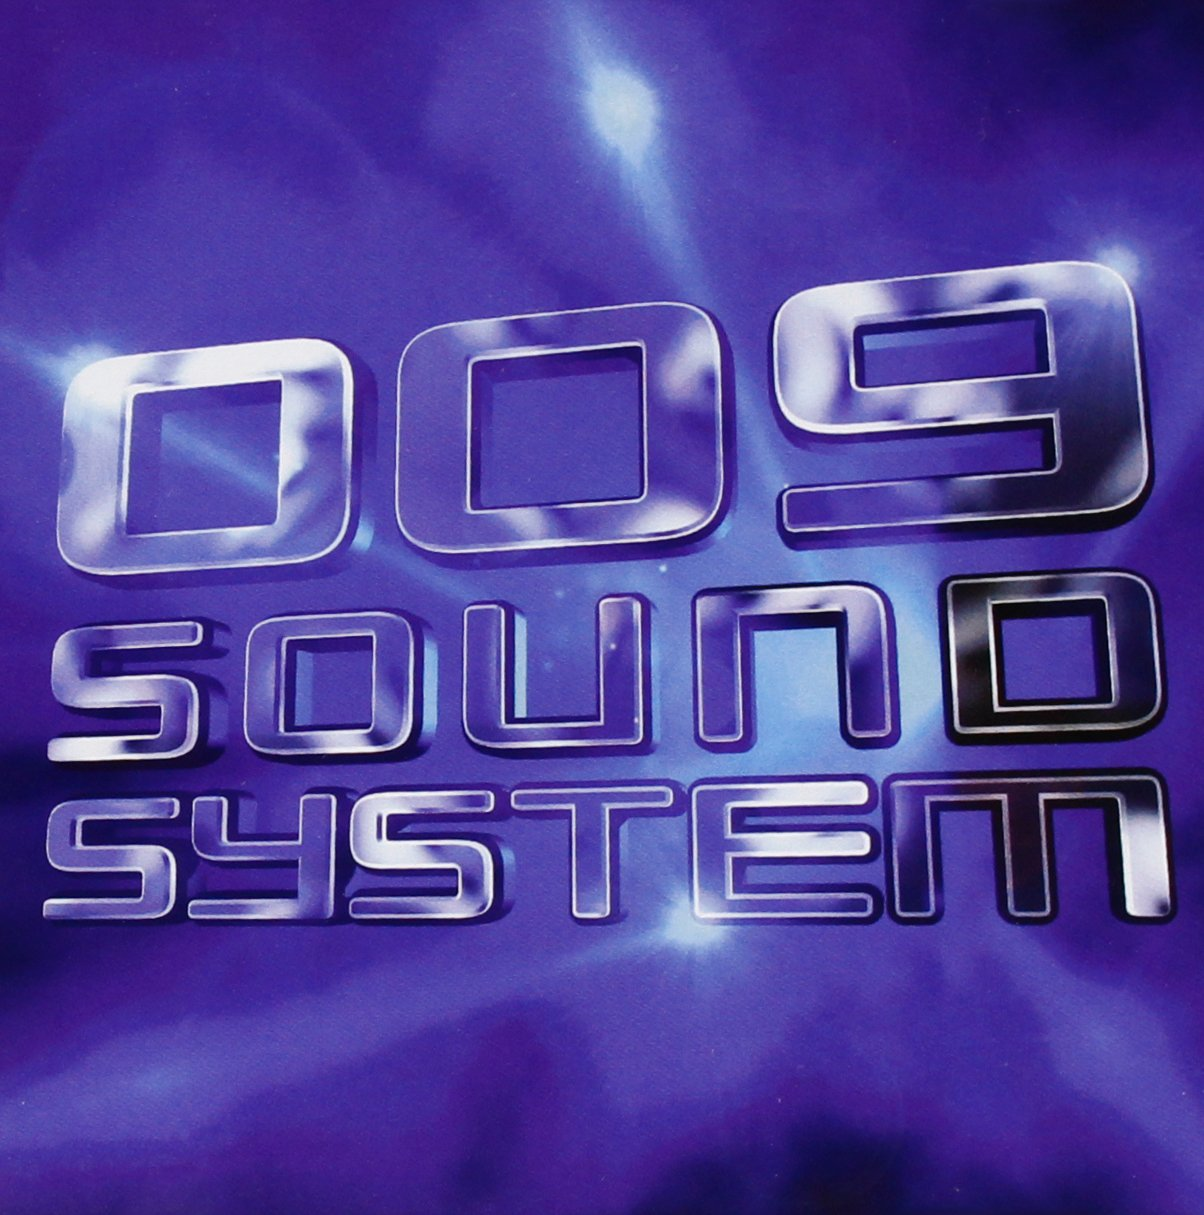 009 sound system with a spirit free download